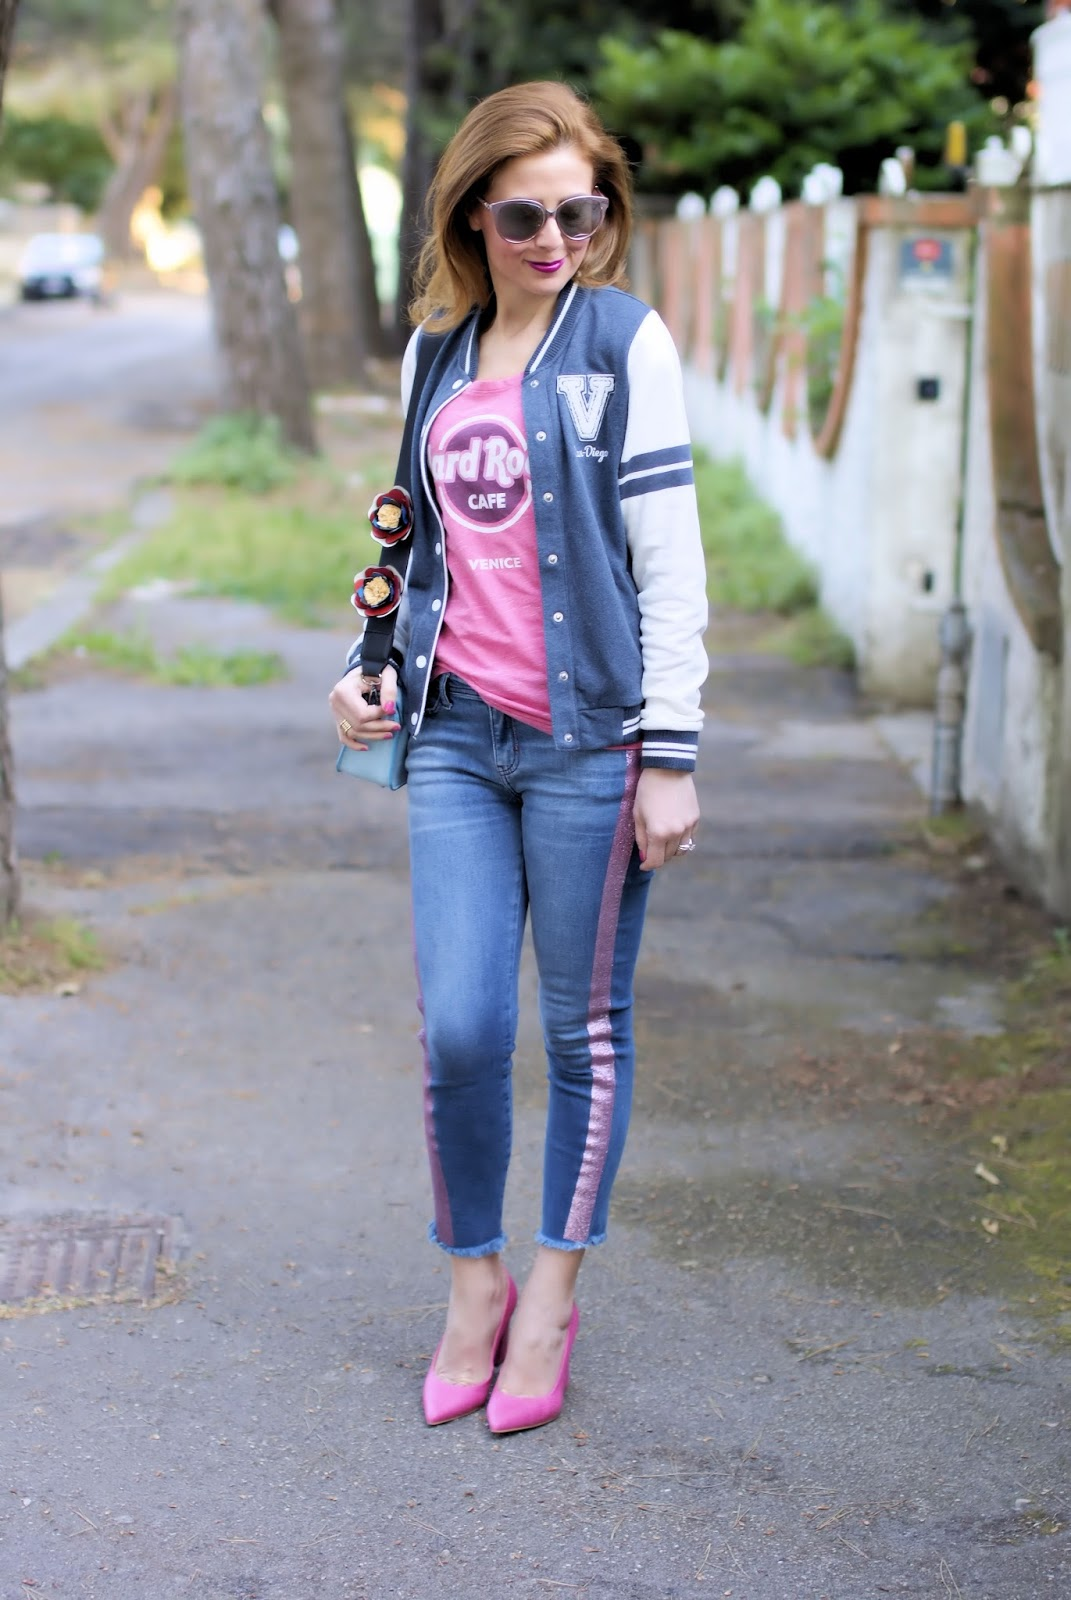 Hard Rock Cafe t.shirt on Fashion and Cookies fashion blog, fashion blogger style